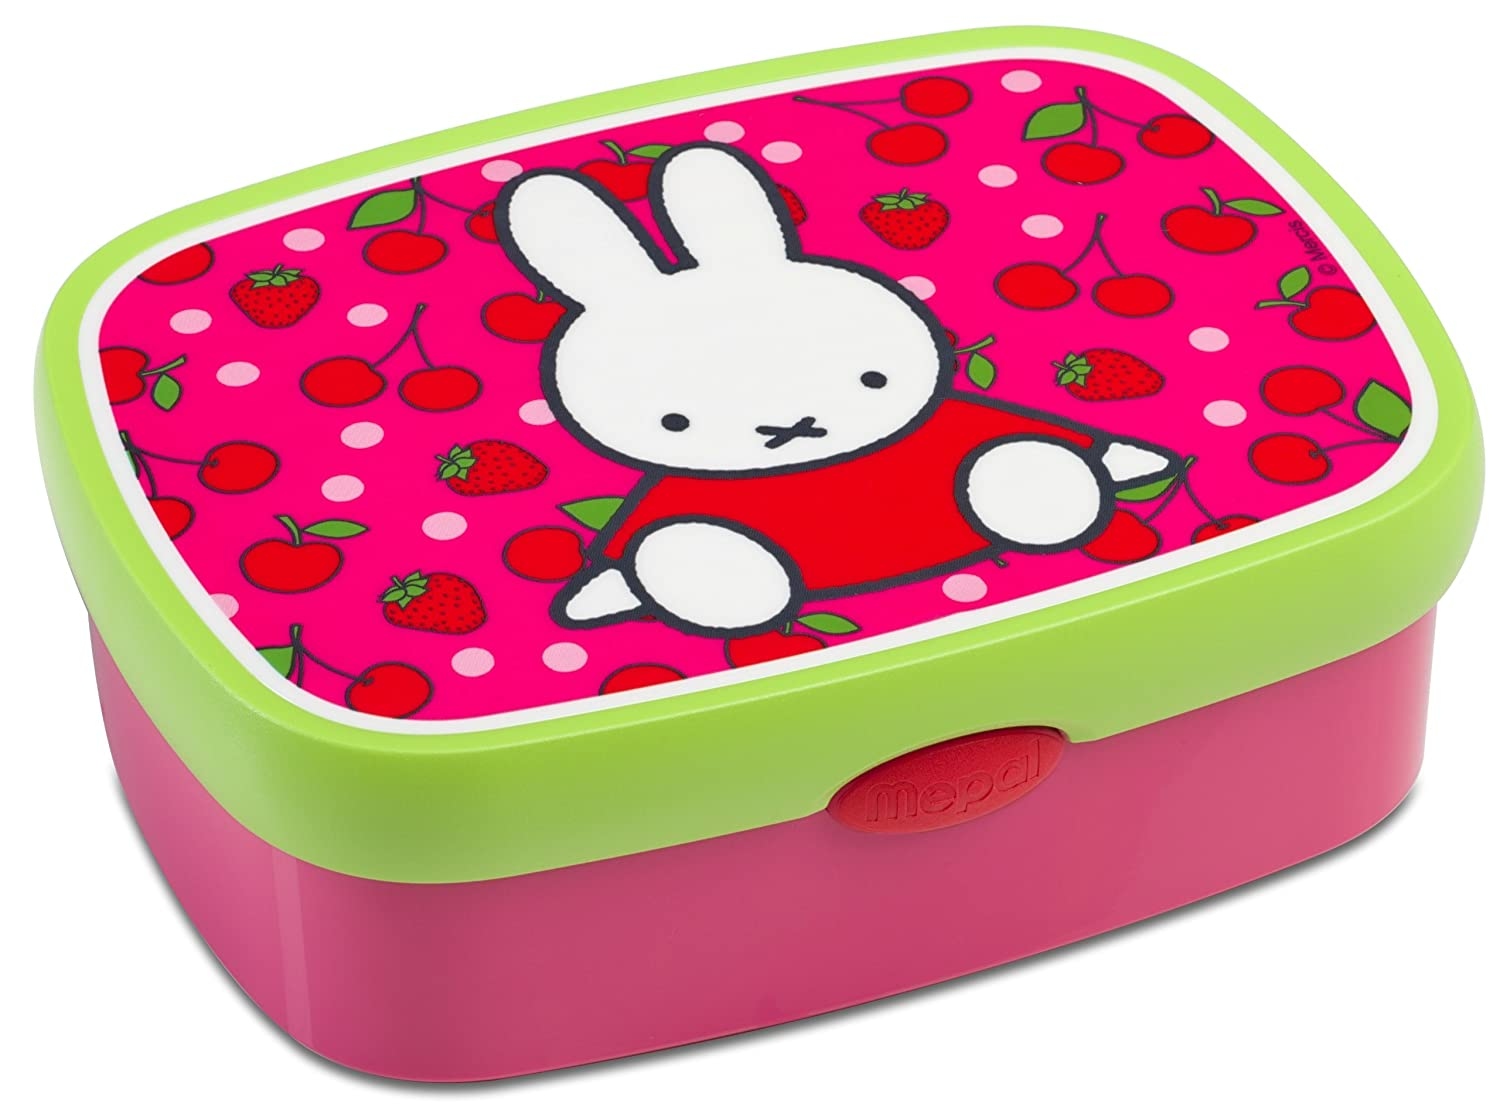 Miffy Lunchbox Rosti Mepal 1.0767E+11